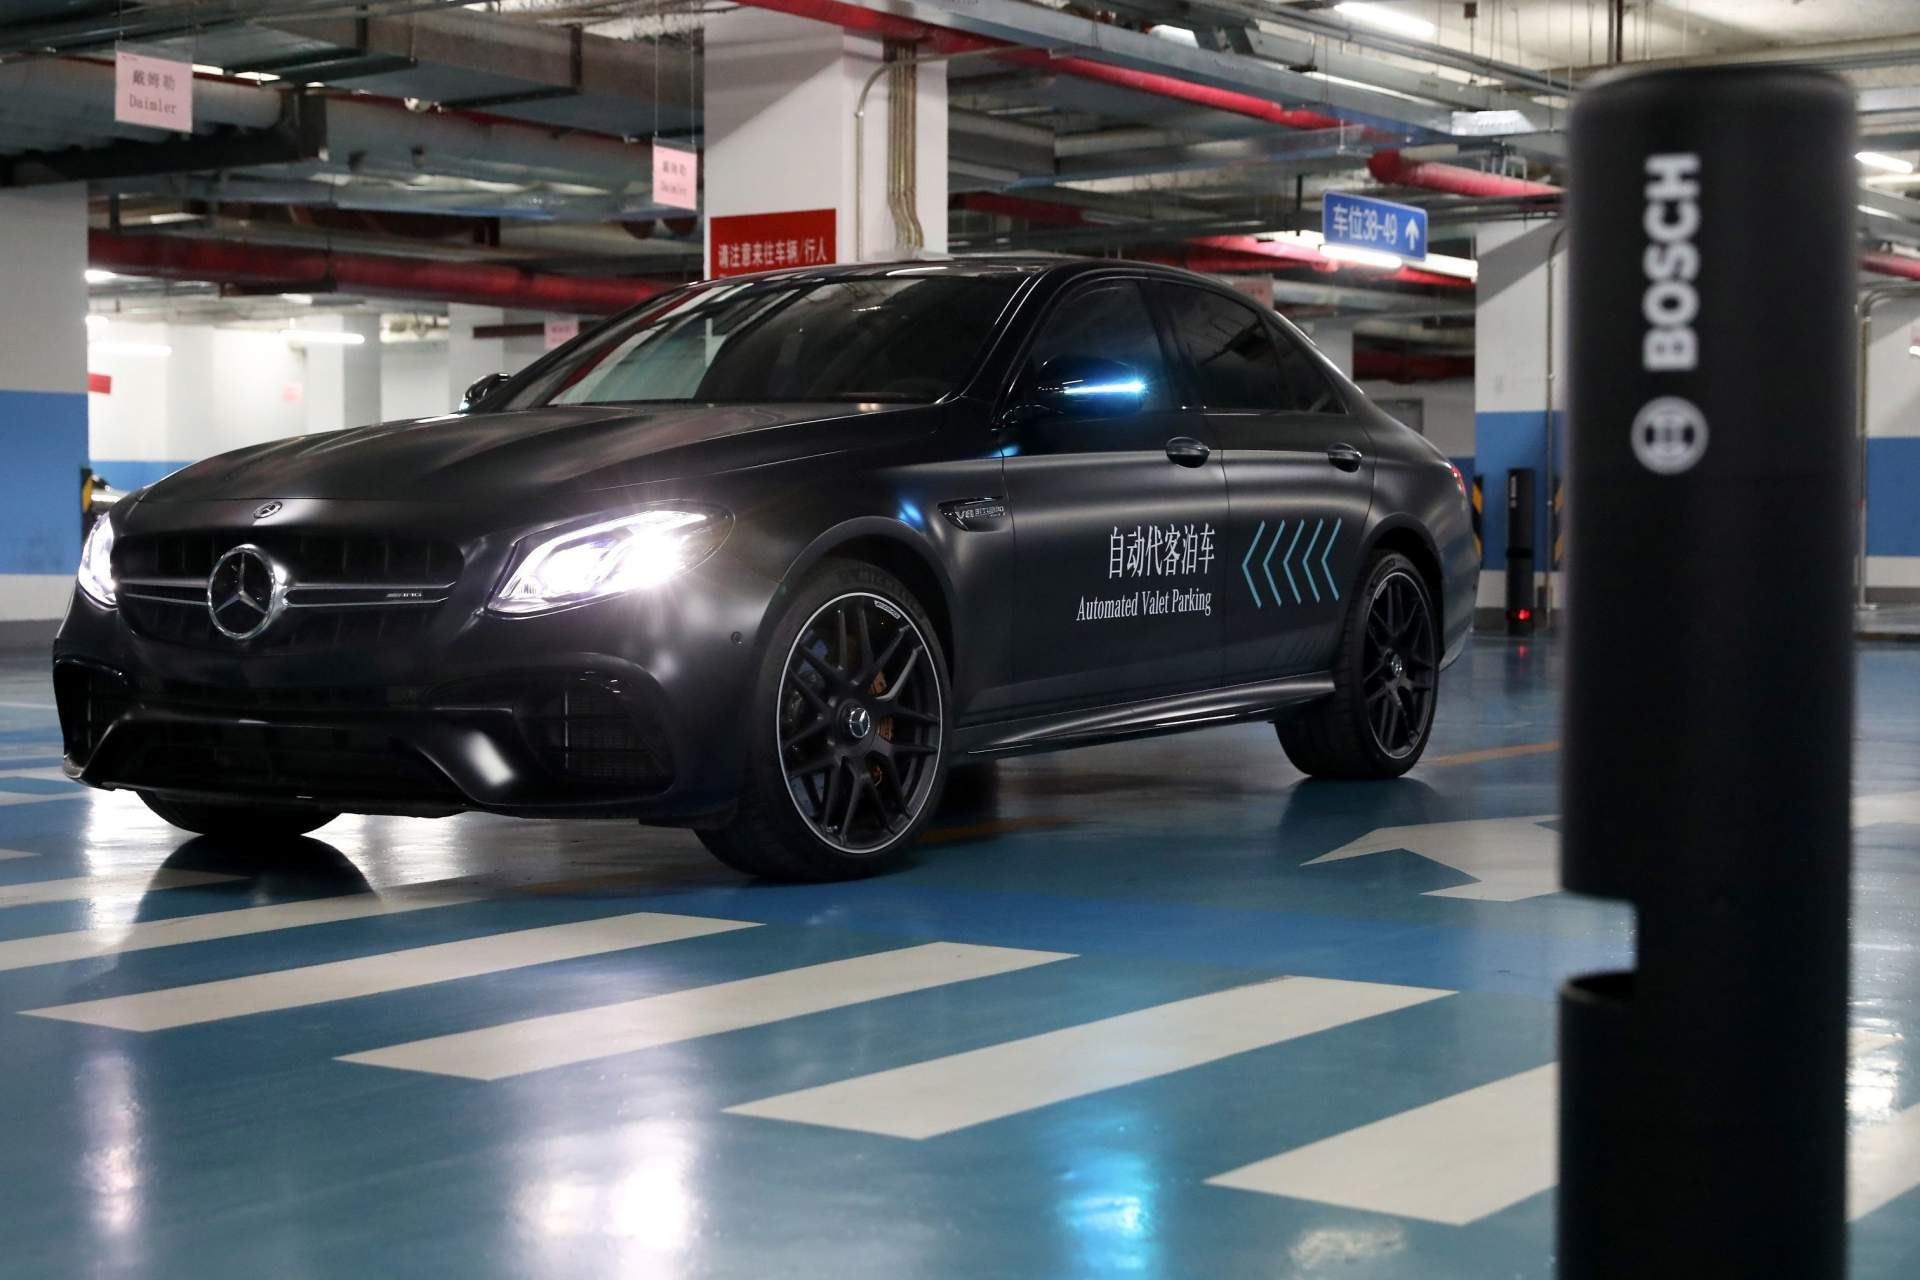 a96c2e18-daimler-and-bosch-automated-valet-parking-4.jpg